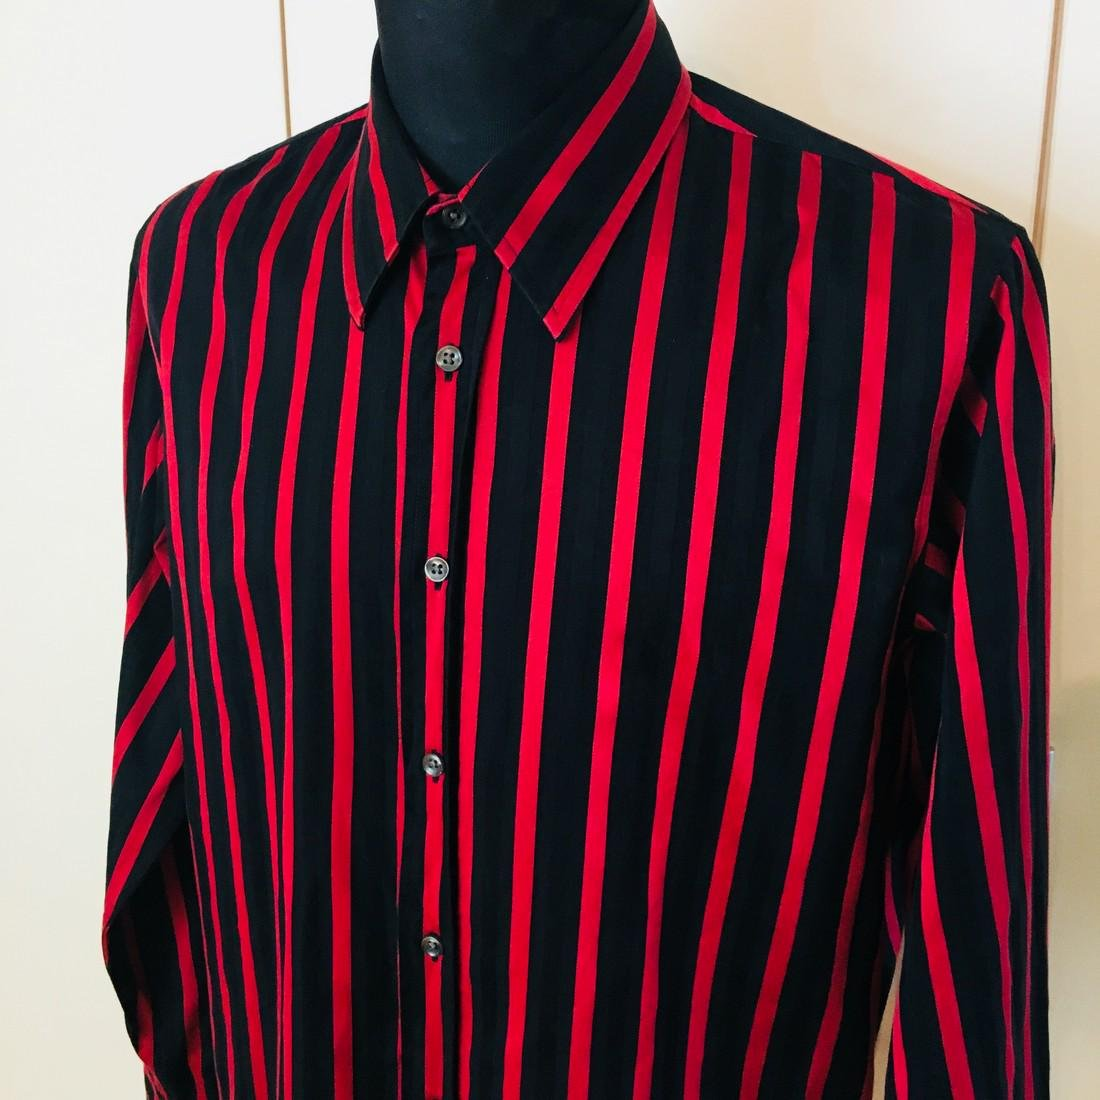 Men's HUGO BOSS Slim Fit Striped Shirt Size XL - 2